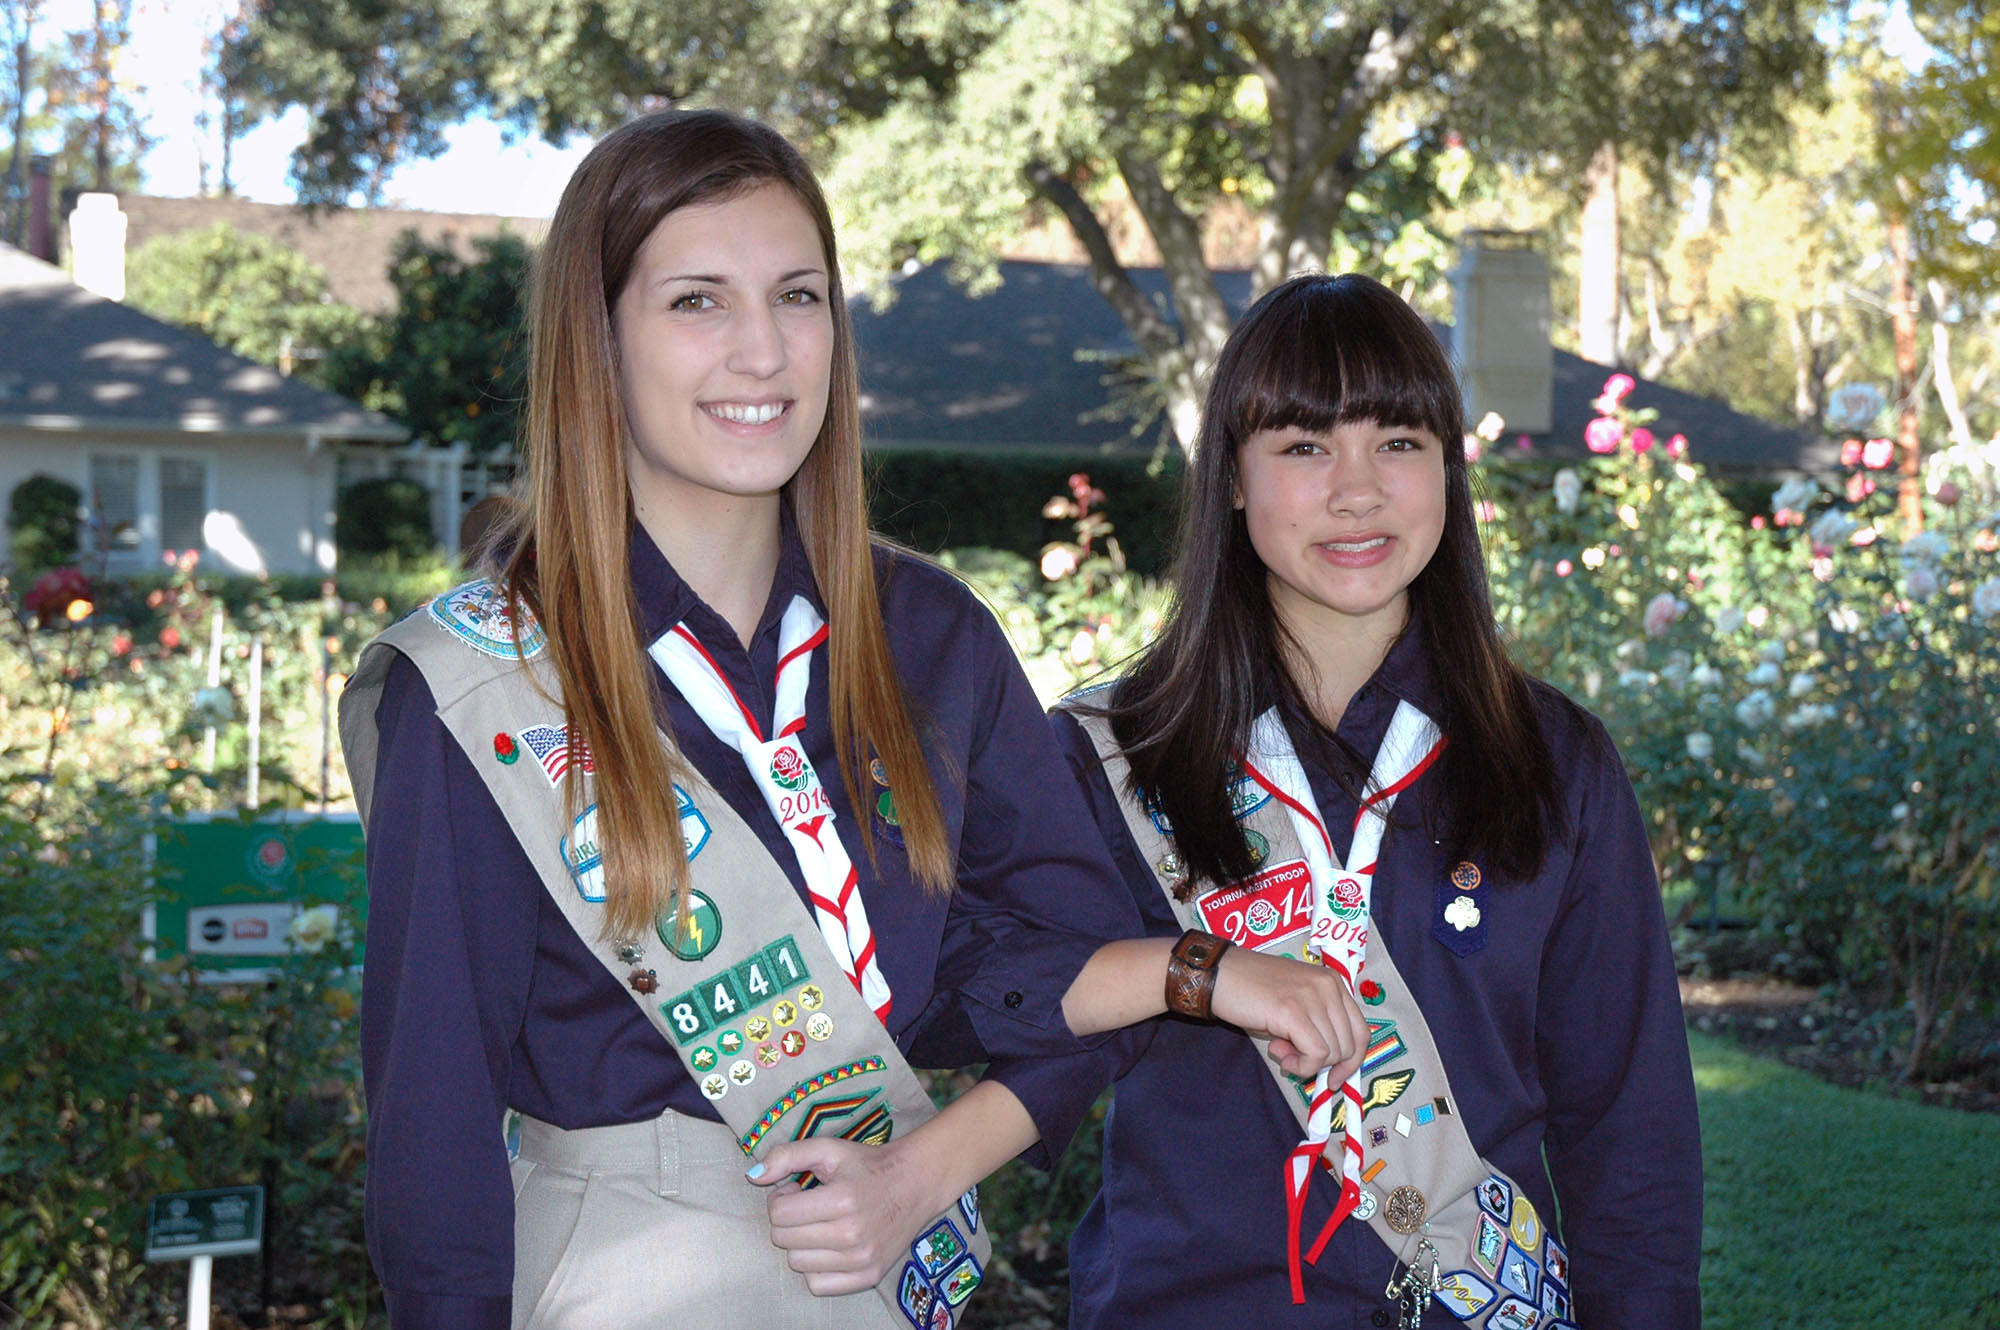 Gold Award Girl Scouts Bea Breckheimer and Catherine Giese, both of La Crescenta, will be two of 50 Tournament Troop members carrying the banners announcing the award-winning floats in the Pasadena Tournament of Roses Parade on New Year's Day.